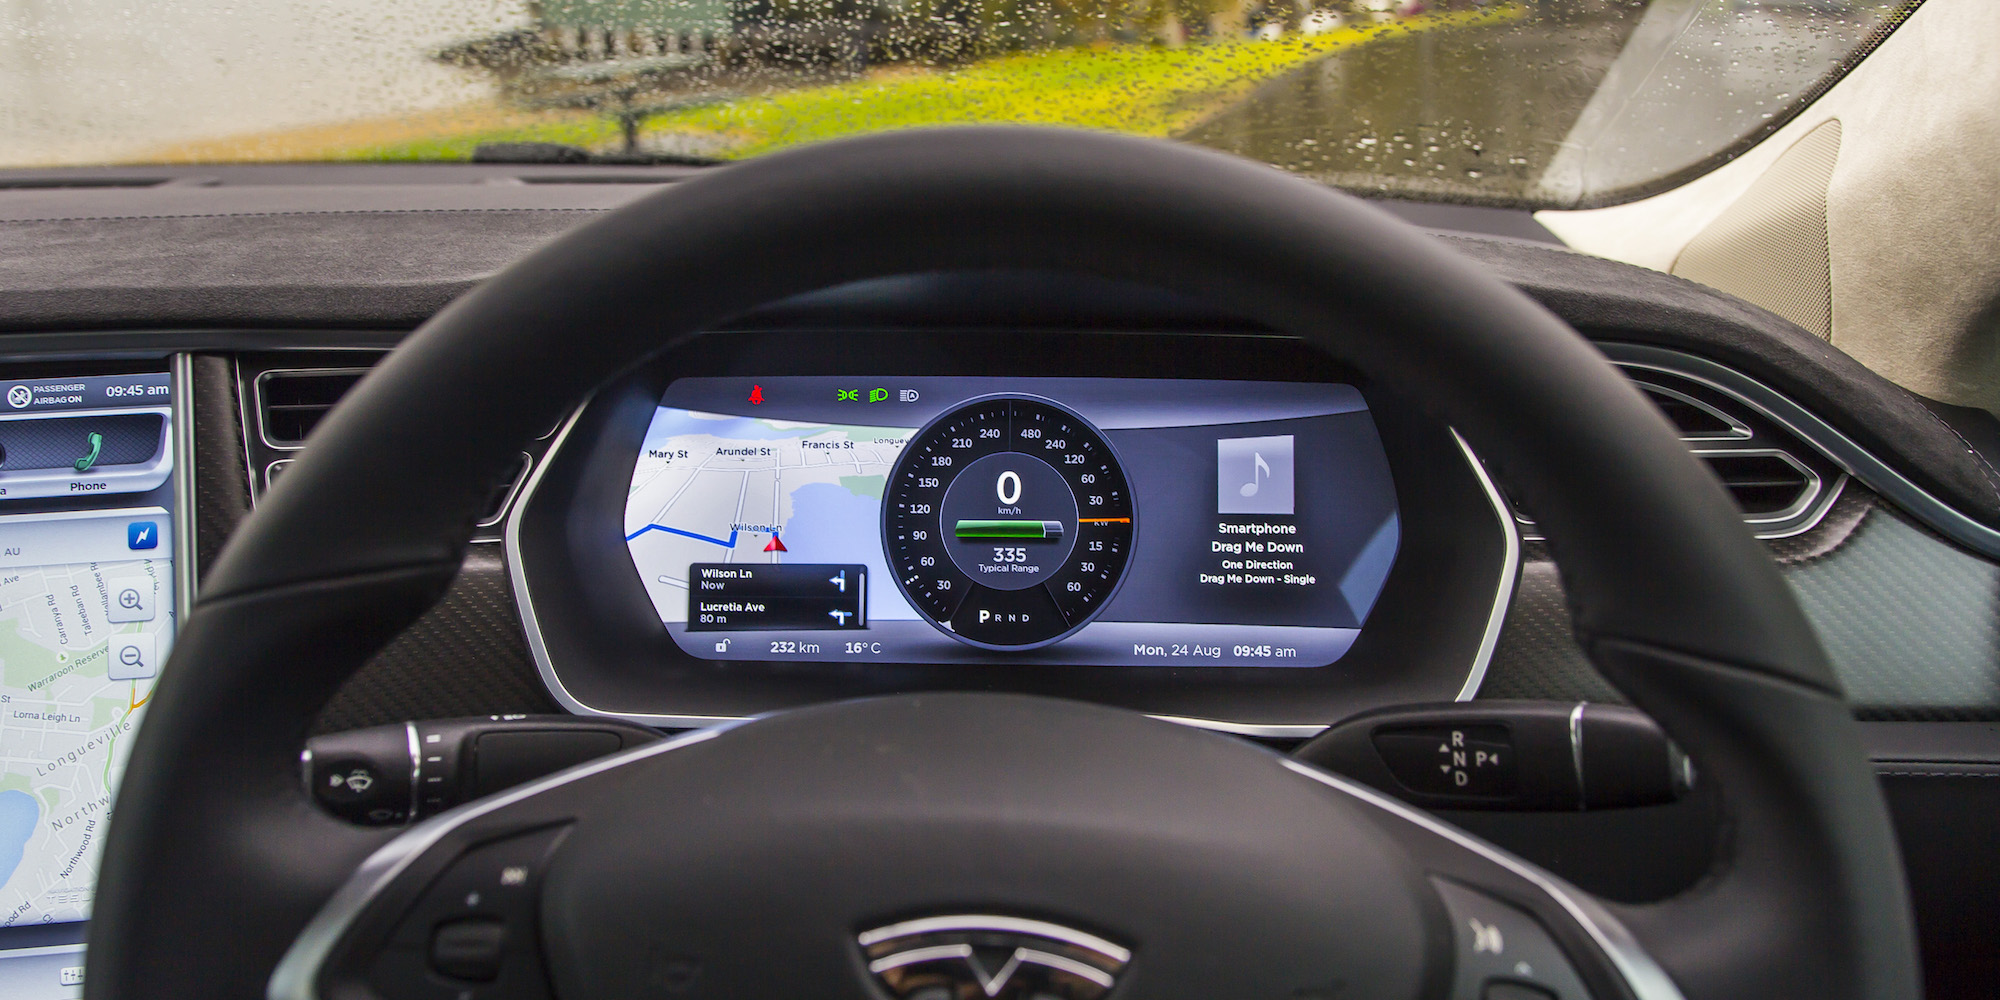 2015 Tesla Model S P85d Speedometer View (View 8 of 37)